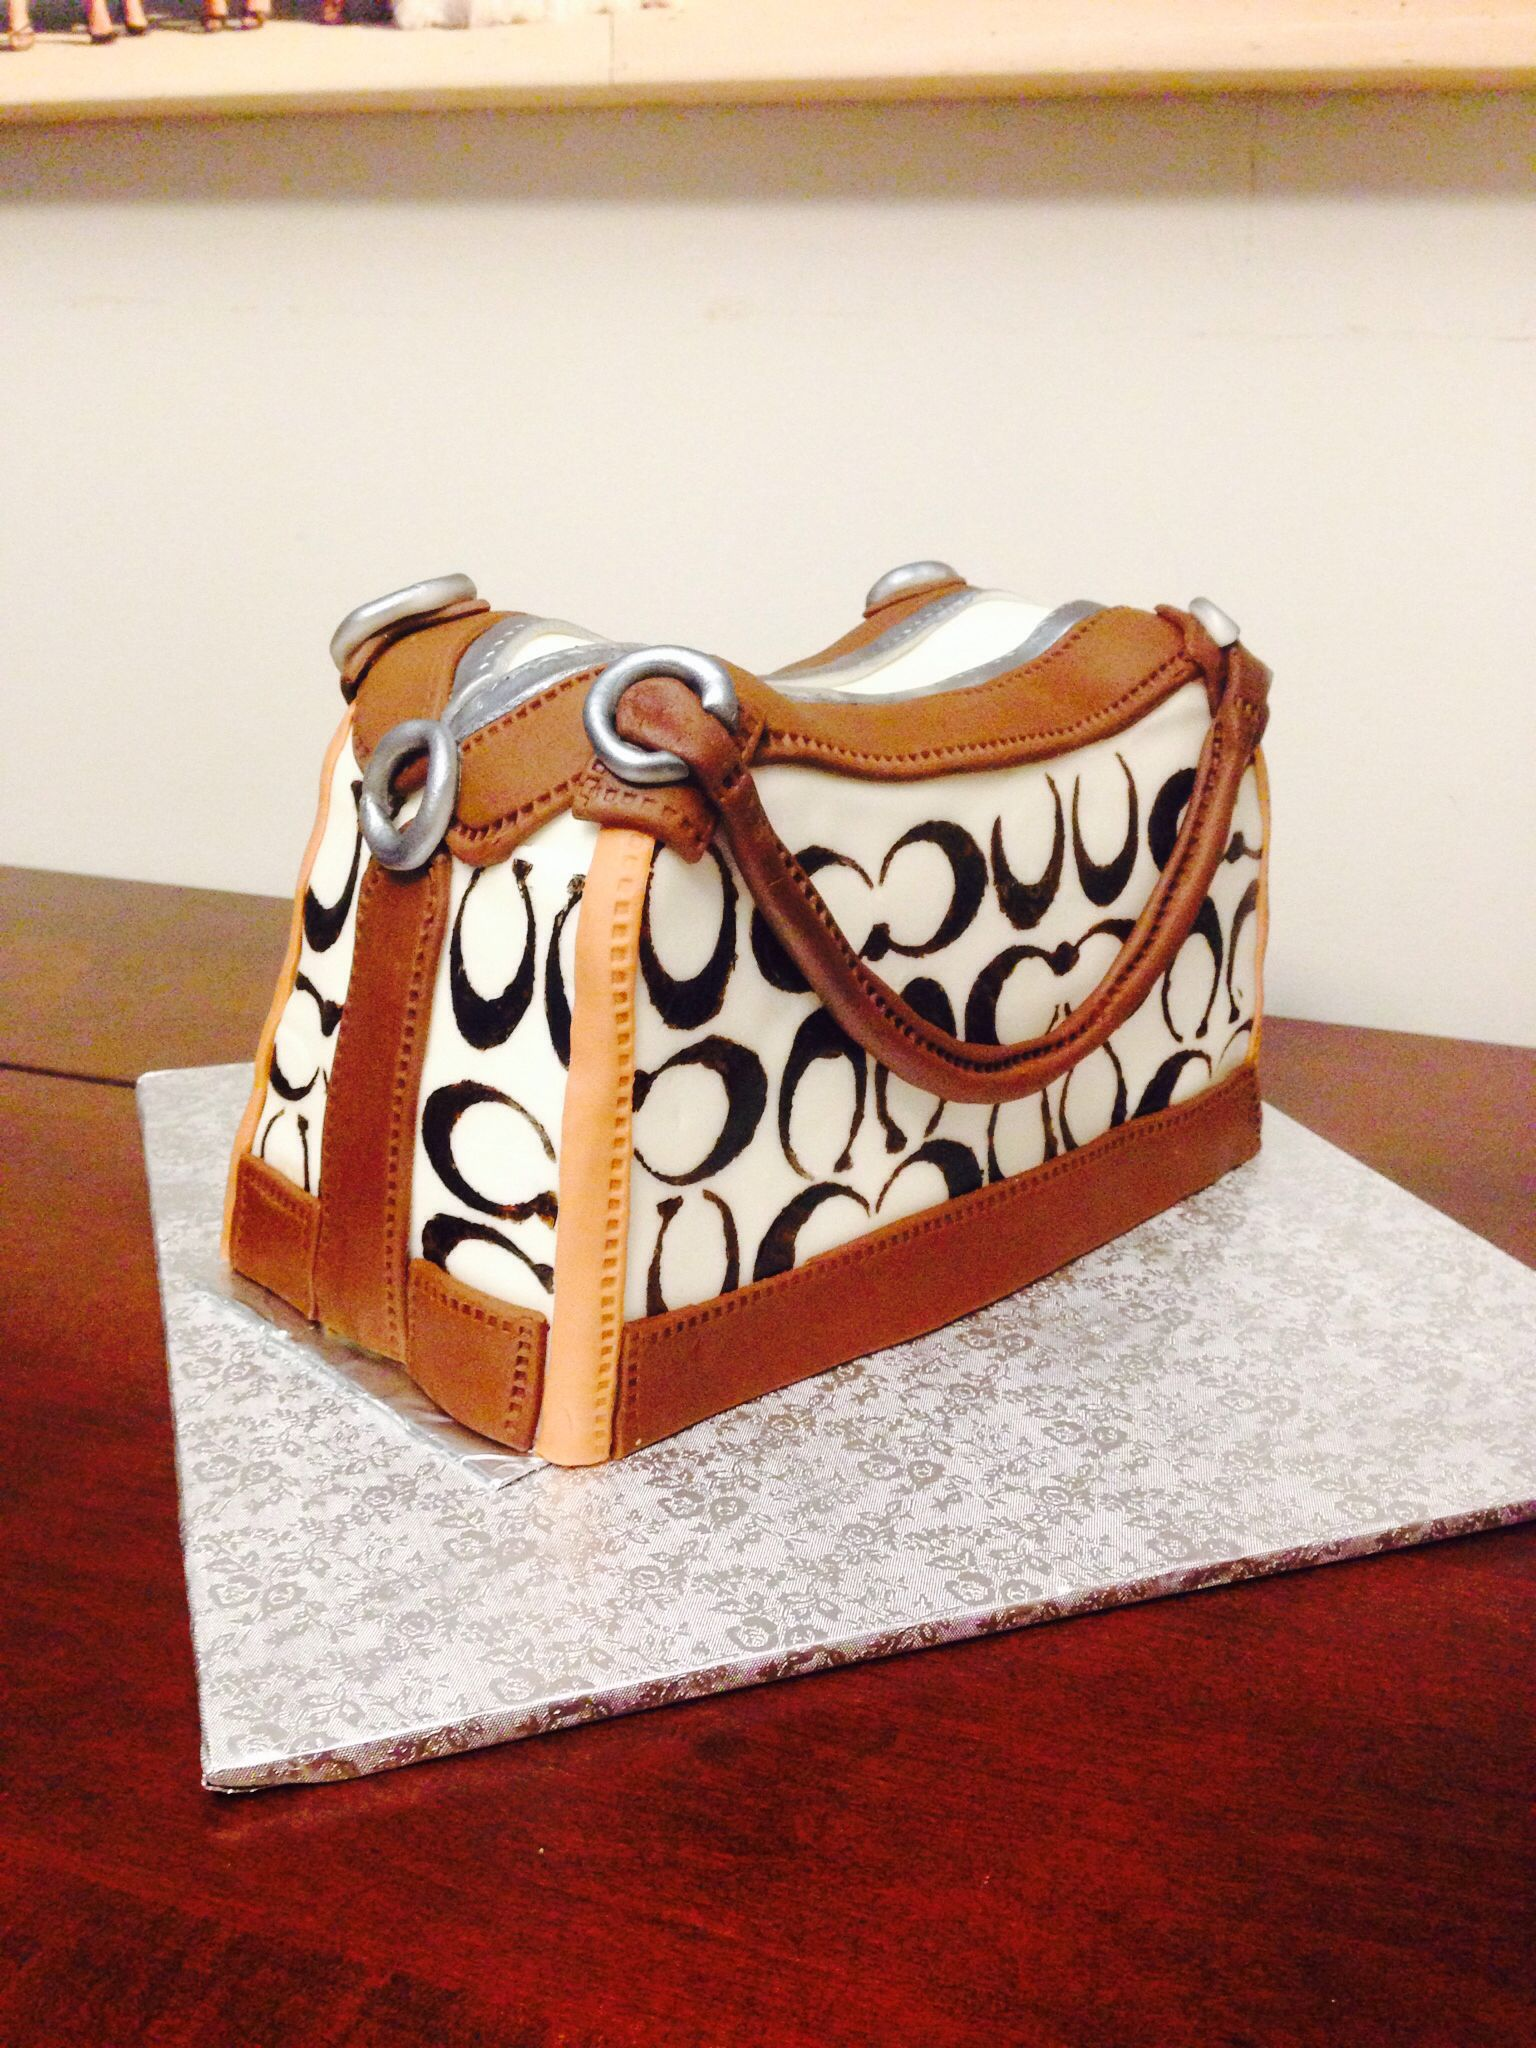 Coach purse cake. Gluten free chocolate fudge cake with vanilla buttercream and marshmallow fondant accents.